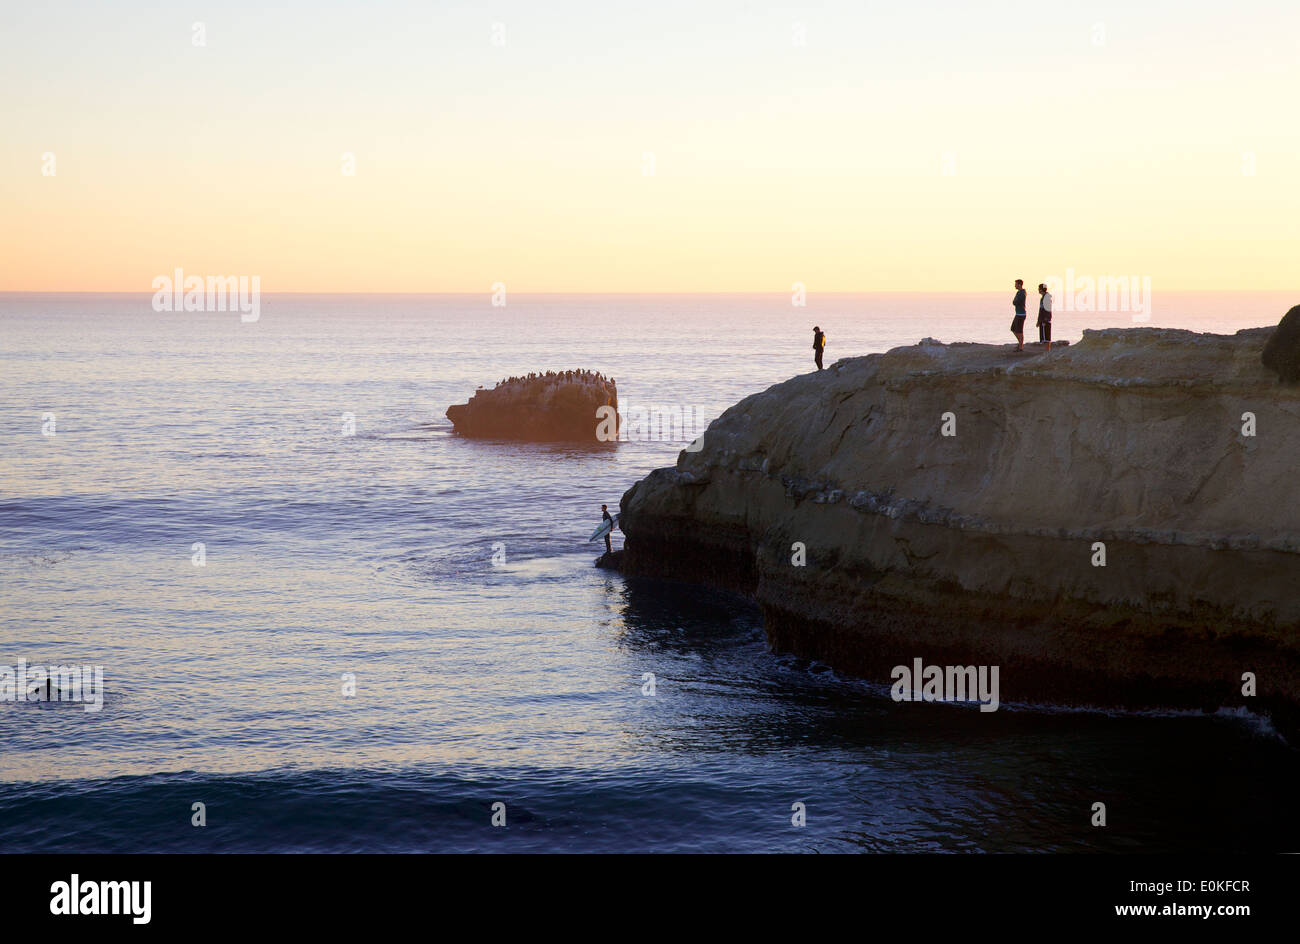 Onlookers watch on a cliff at sunset as a surfer prepares to jump into the ocean at Steamers in Santa Cruz California. - Stock Image